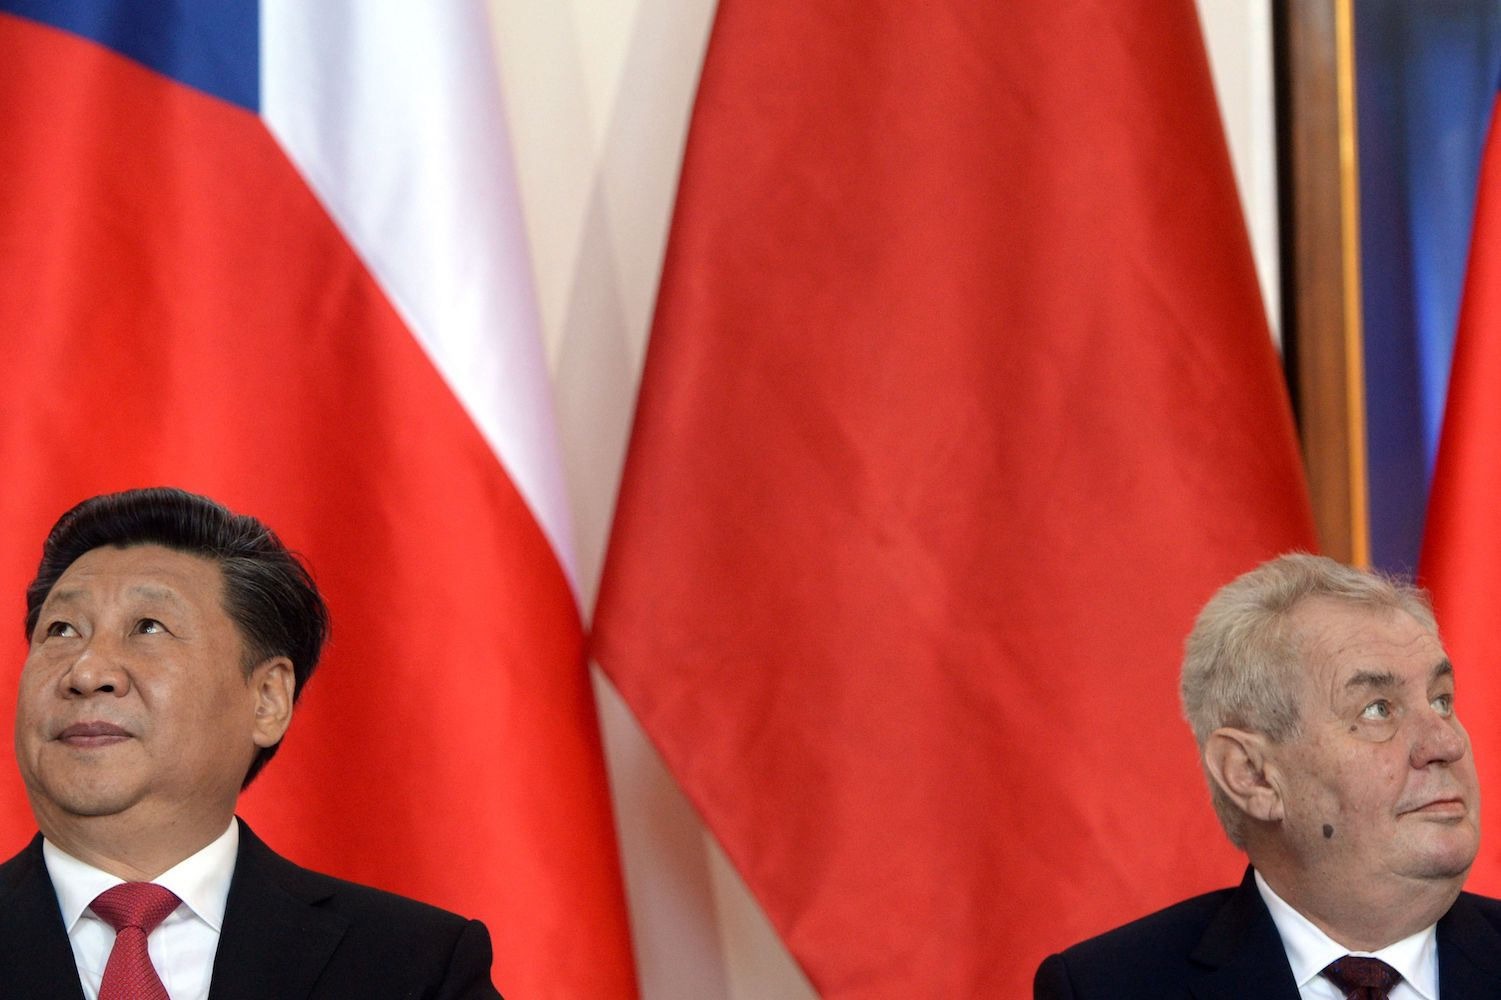 foreignpolicy.com - David Hutt - No, China Has Not Bought Central and Eastern Europe